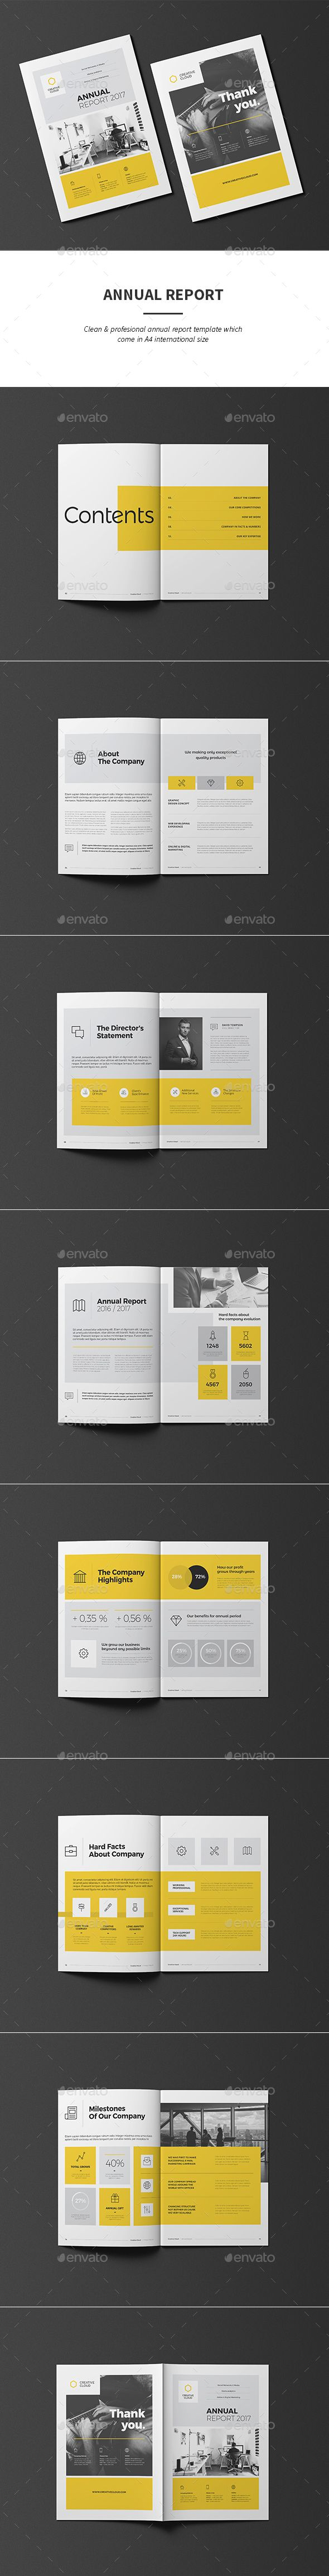 Annual Report by -BeCreative- Annual Report Template: Annual Report template created in Adobe InDesign, it comes in International A4 paper size.Key Features:16